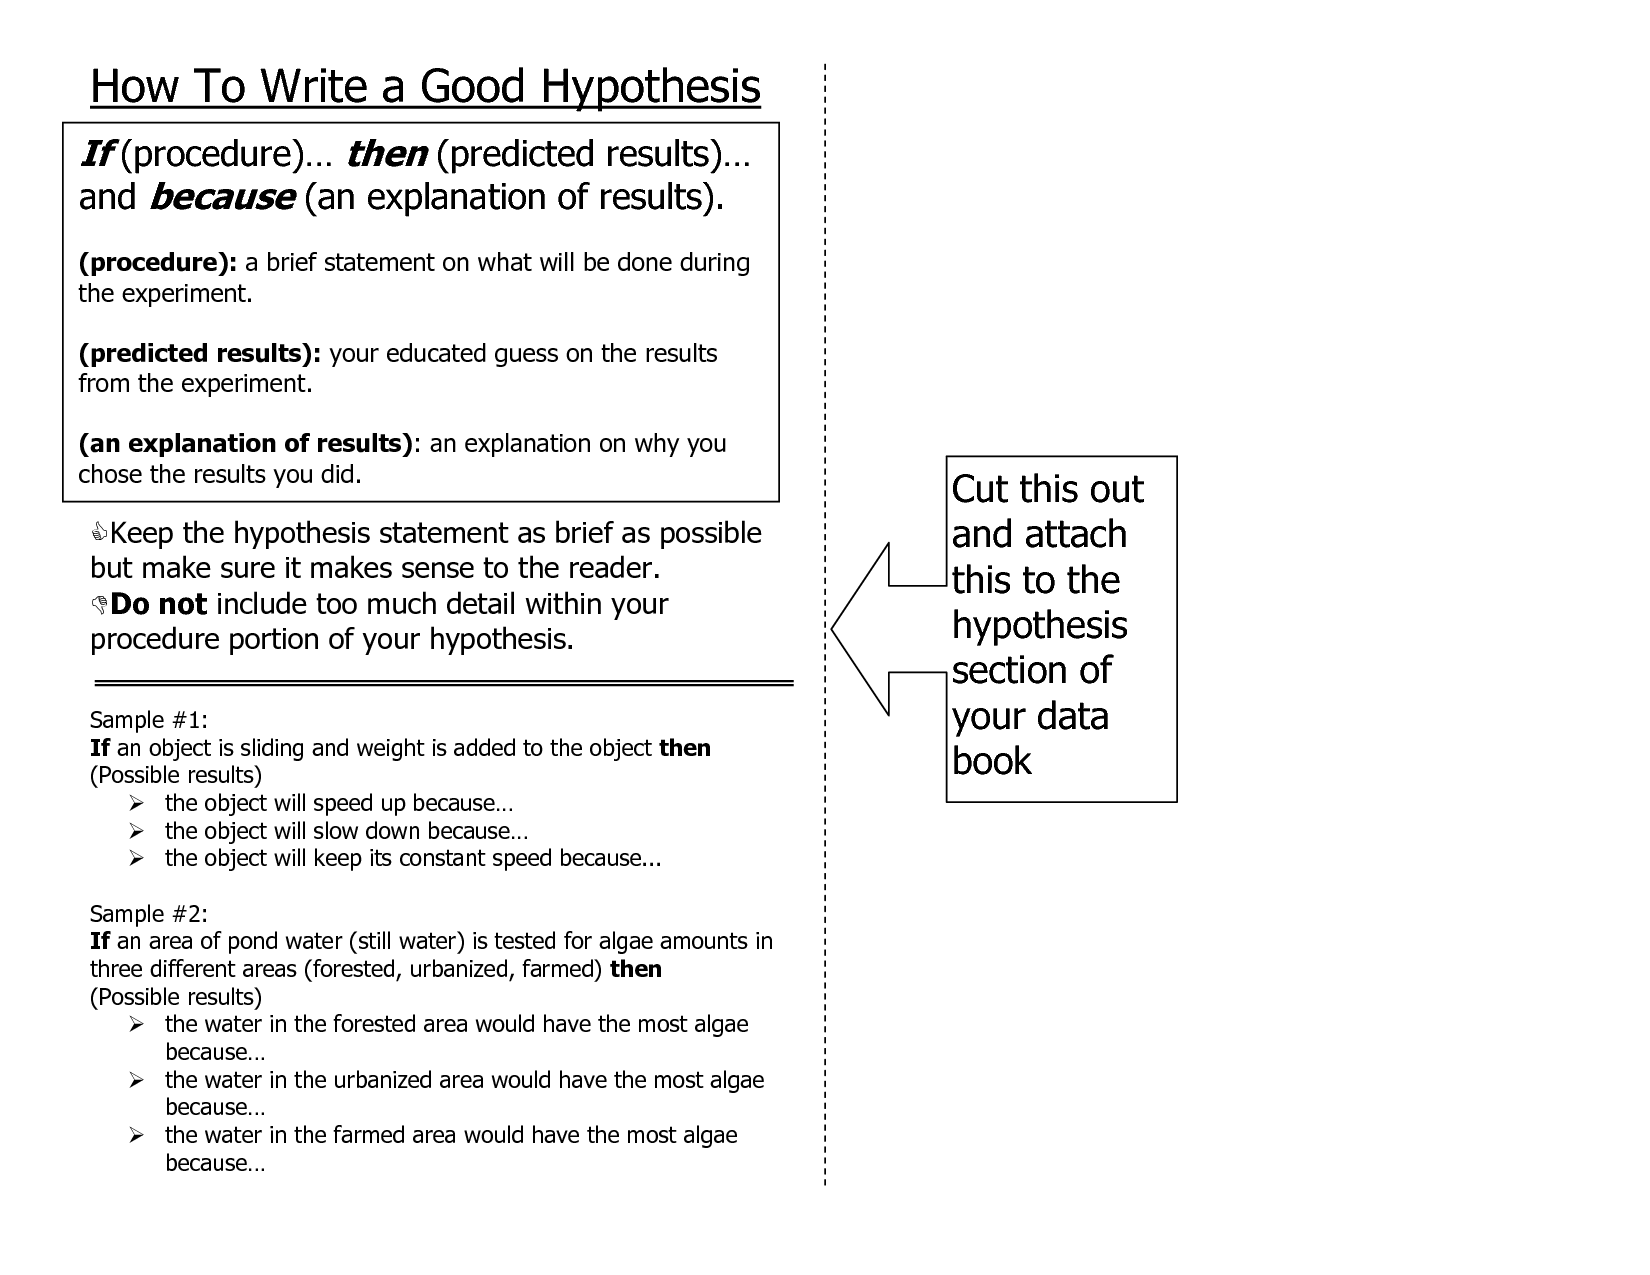 how to write a hypothesis statement for a research paper A hypothesis (plural hypotheses) is a precise, testable statement of what the   changes) and the dependent variable (what the research measures)  to write  the alternative and null hypotheses for an investigation, you need to identify the  key variables in the study  how to reference this article: mcleod.